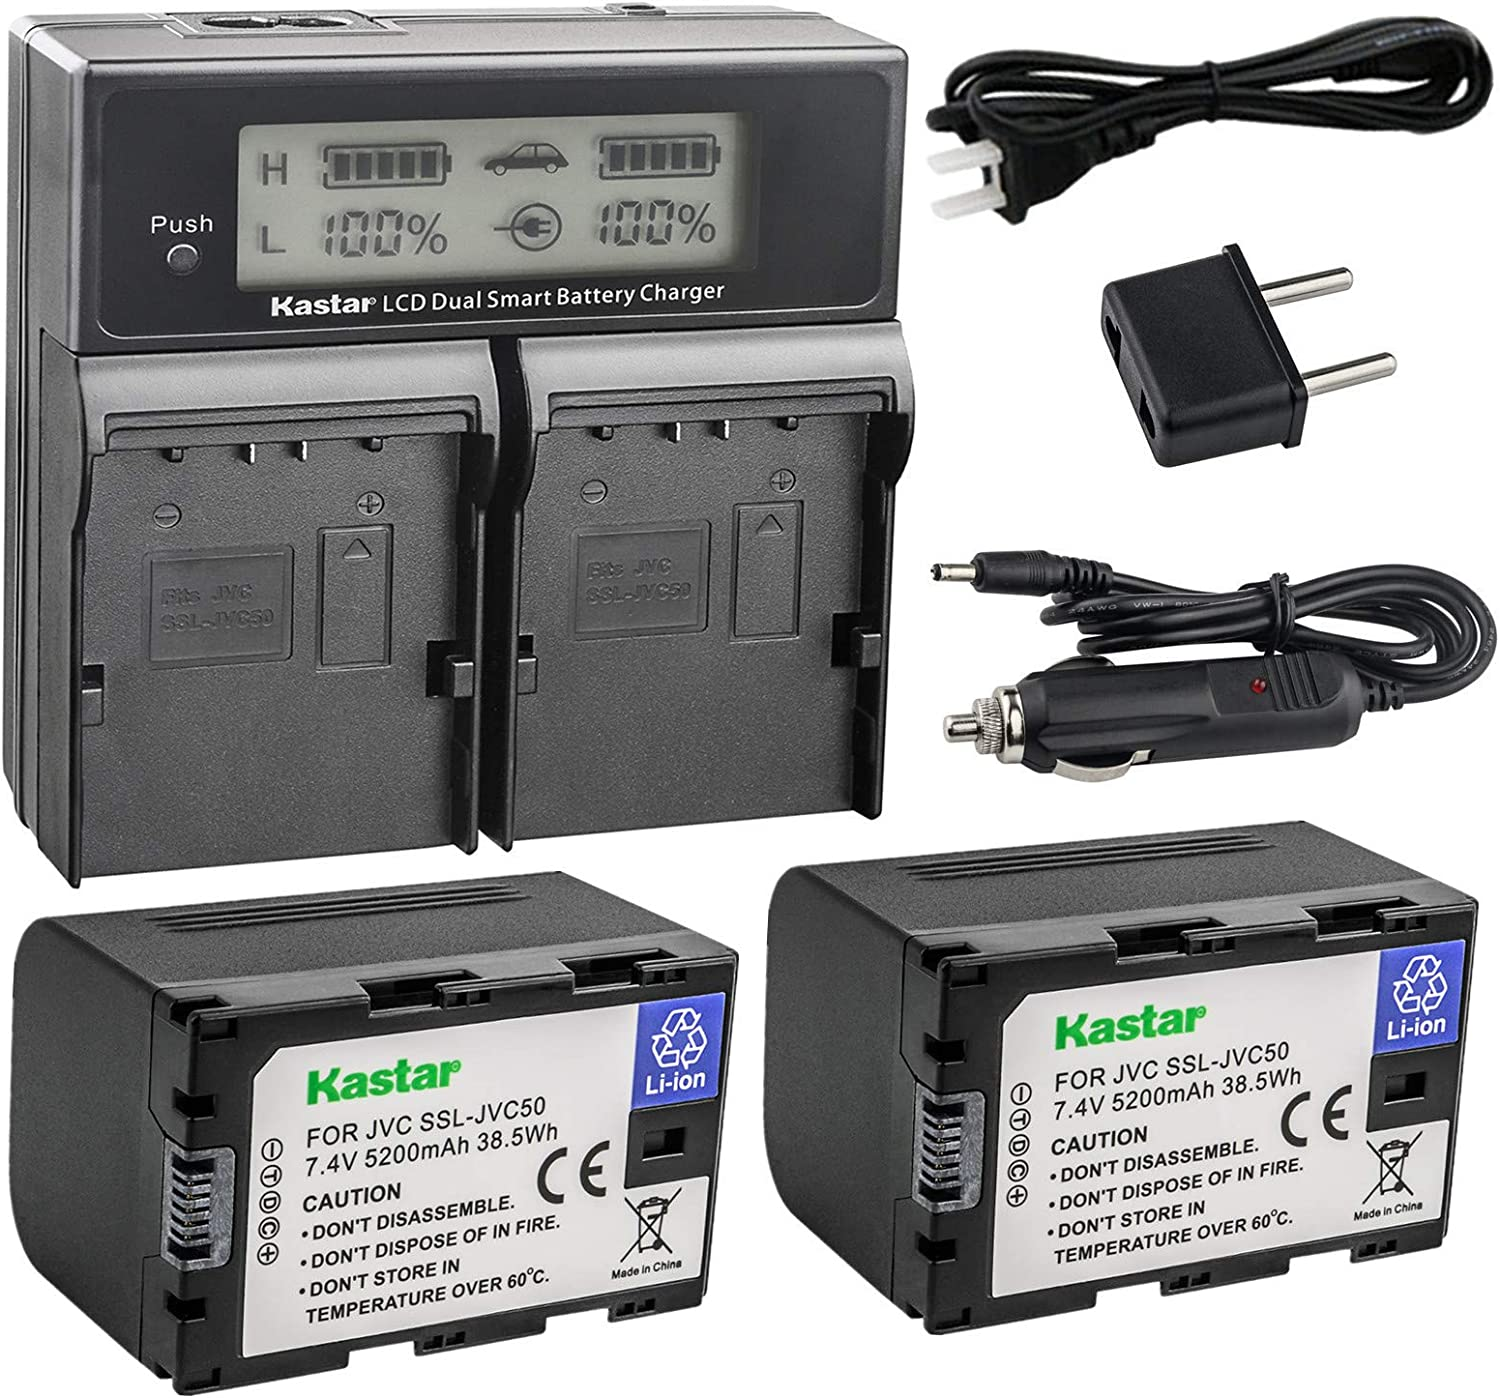 and GY-HM650 Broadcast Camcorders GY-HM200 SSL-JVC50 GY-HM600 SSL-JVC75 USB Dual Battery Charger for JVC GY-HMQ10 GY-LS300